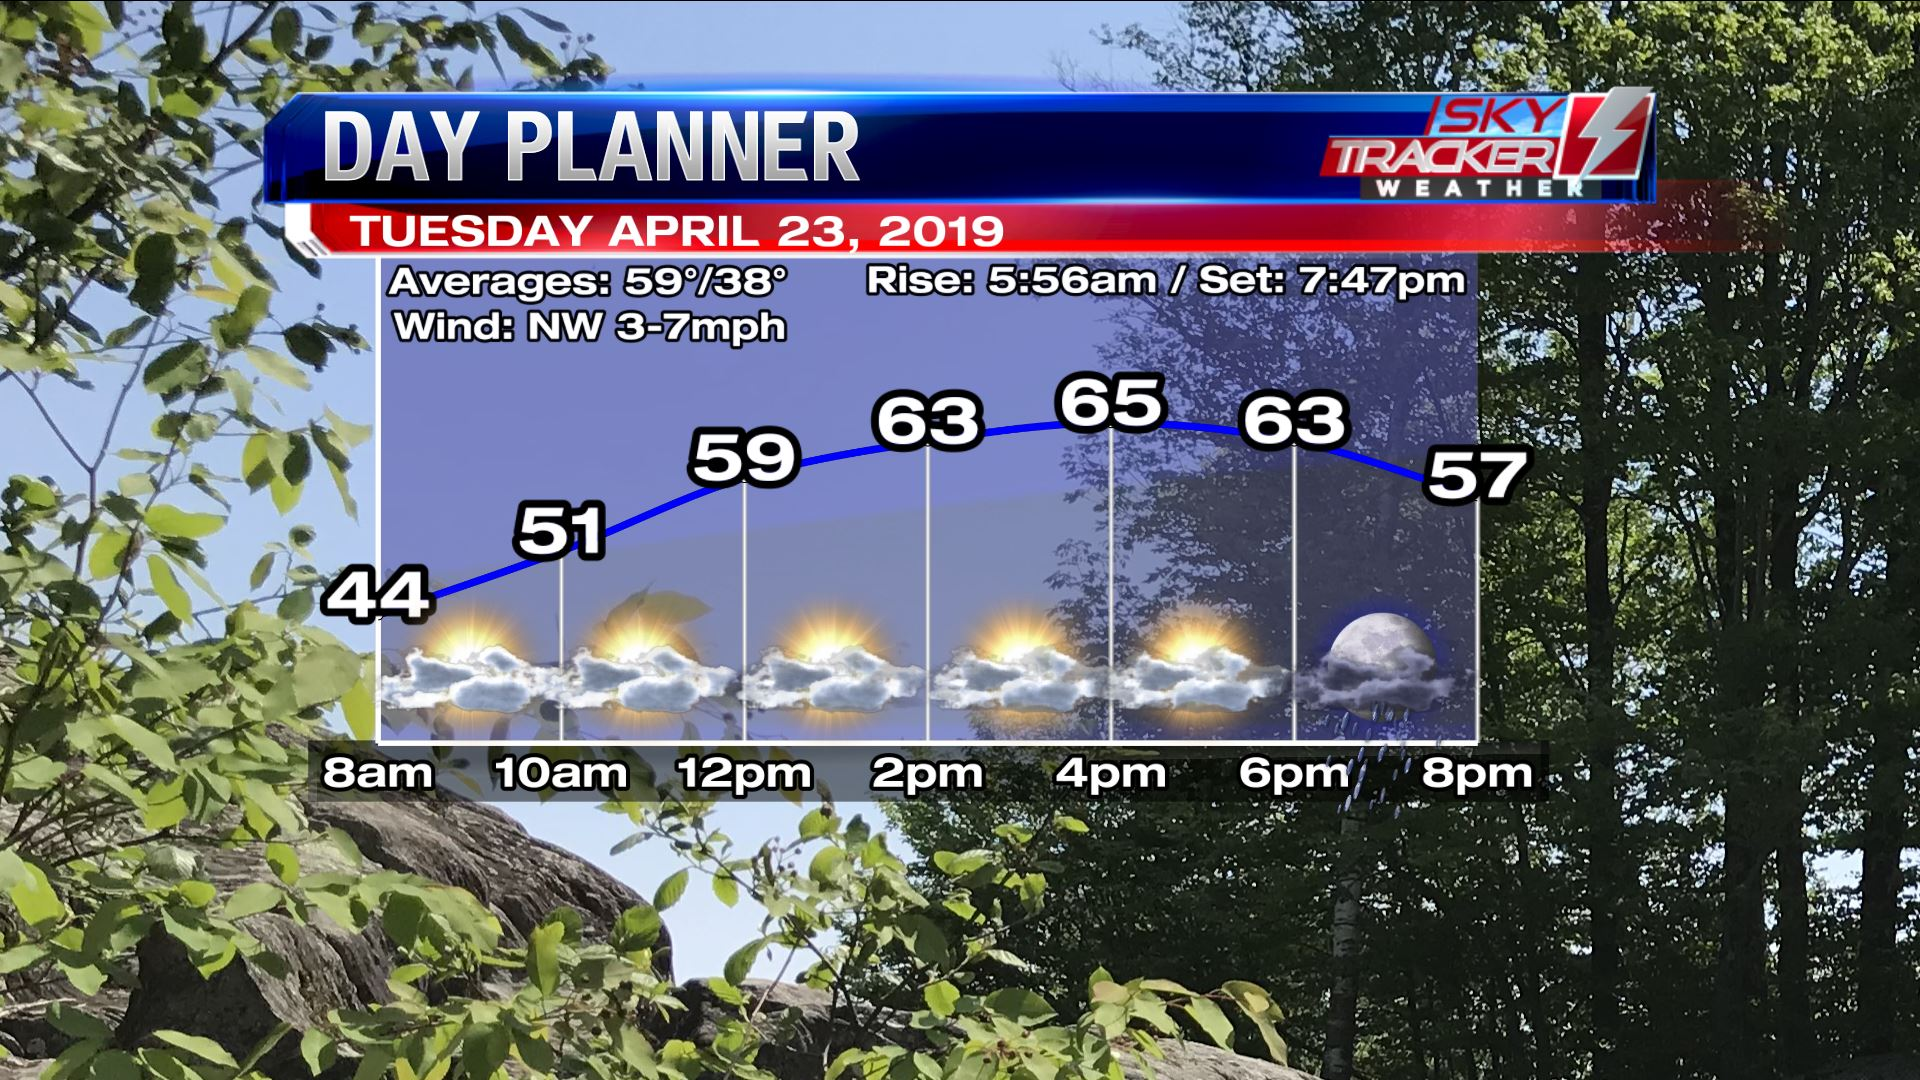 Planner for Tuesday April 23 2019